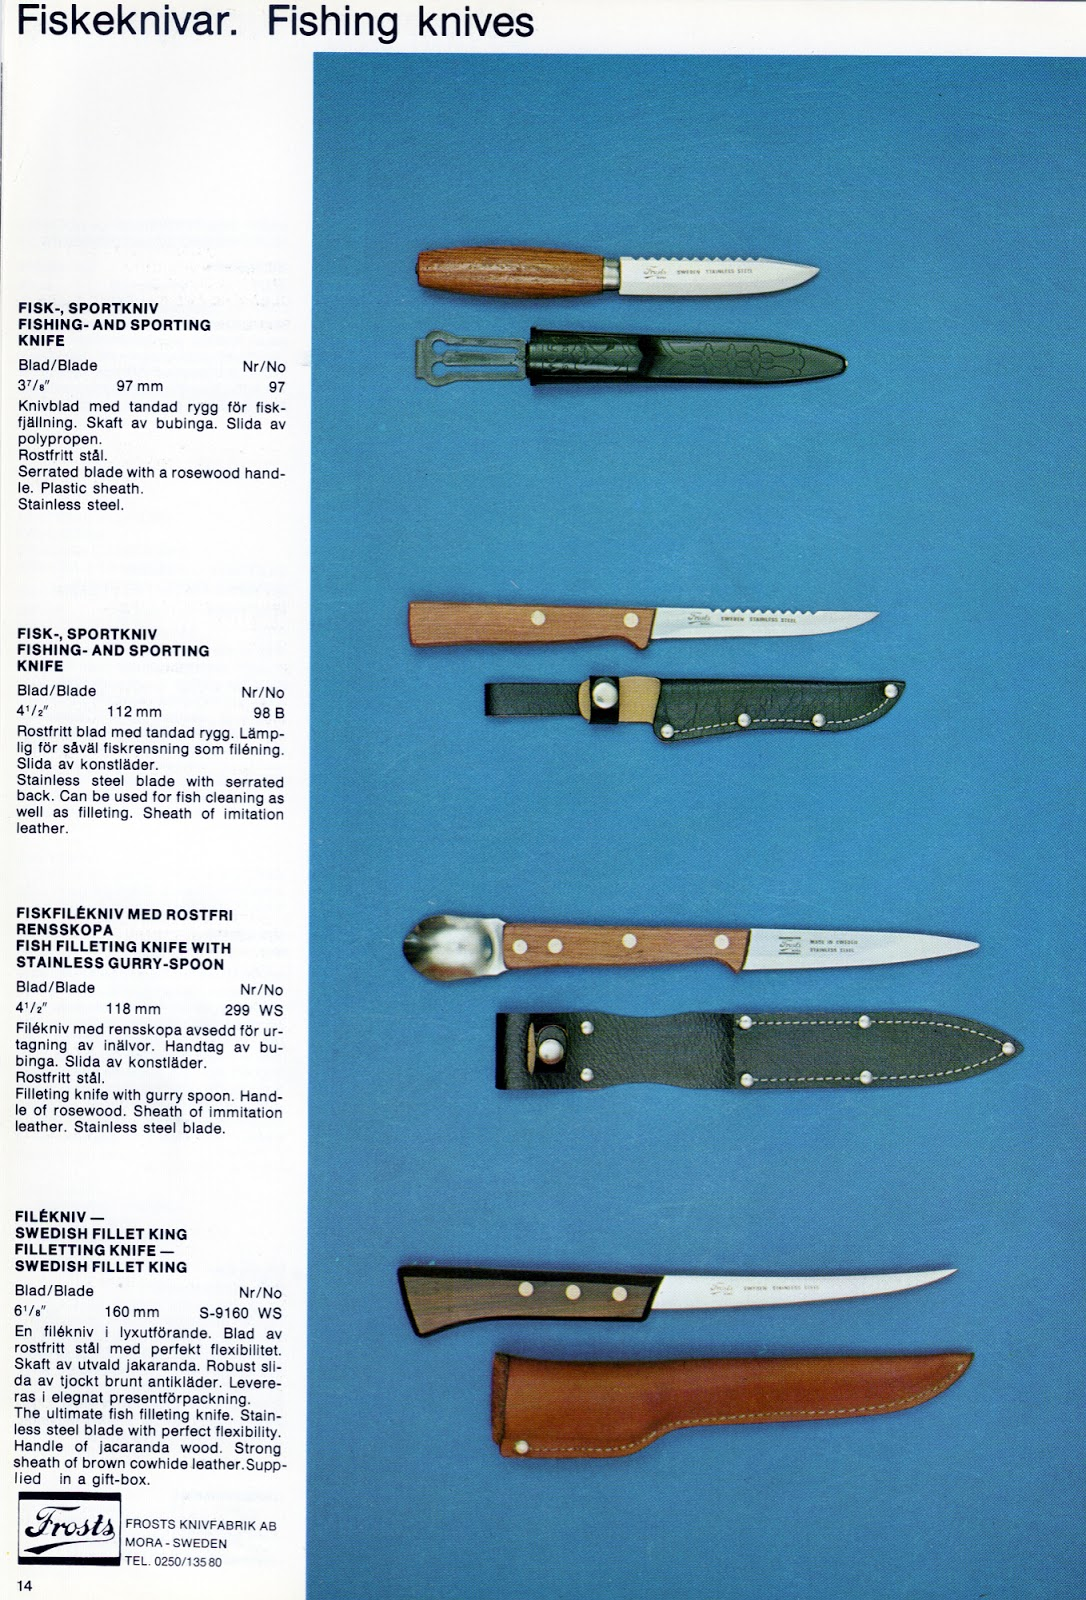 Famous cutlery from Sweden: The Mora knife | The Blade Blog